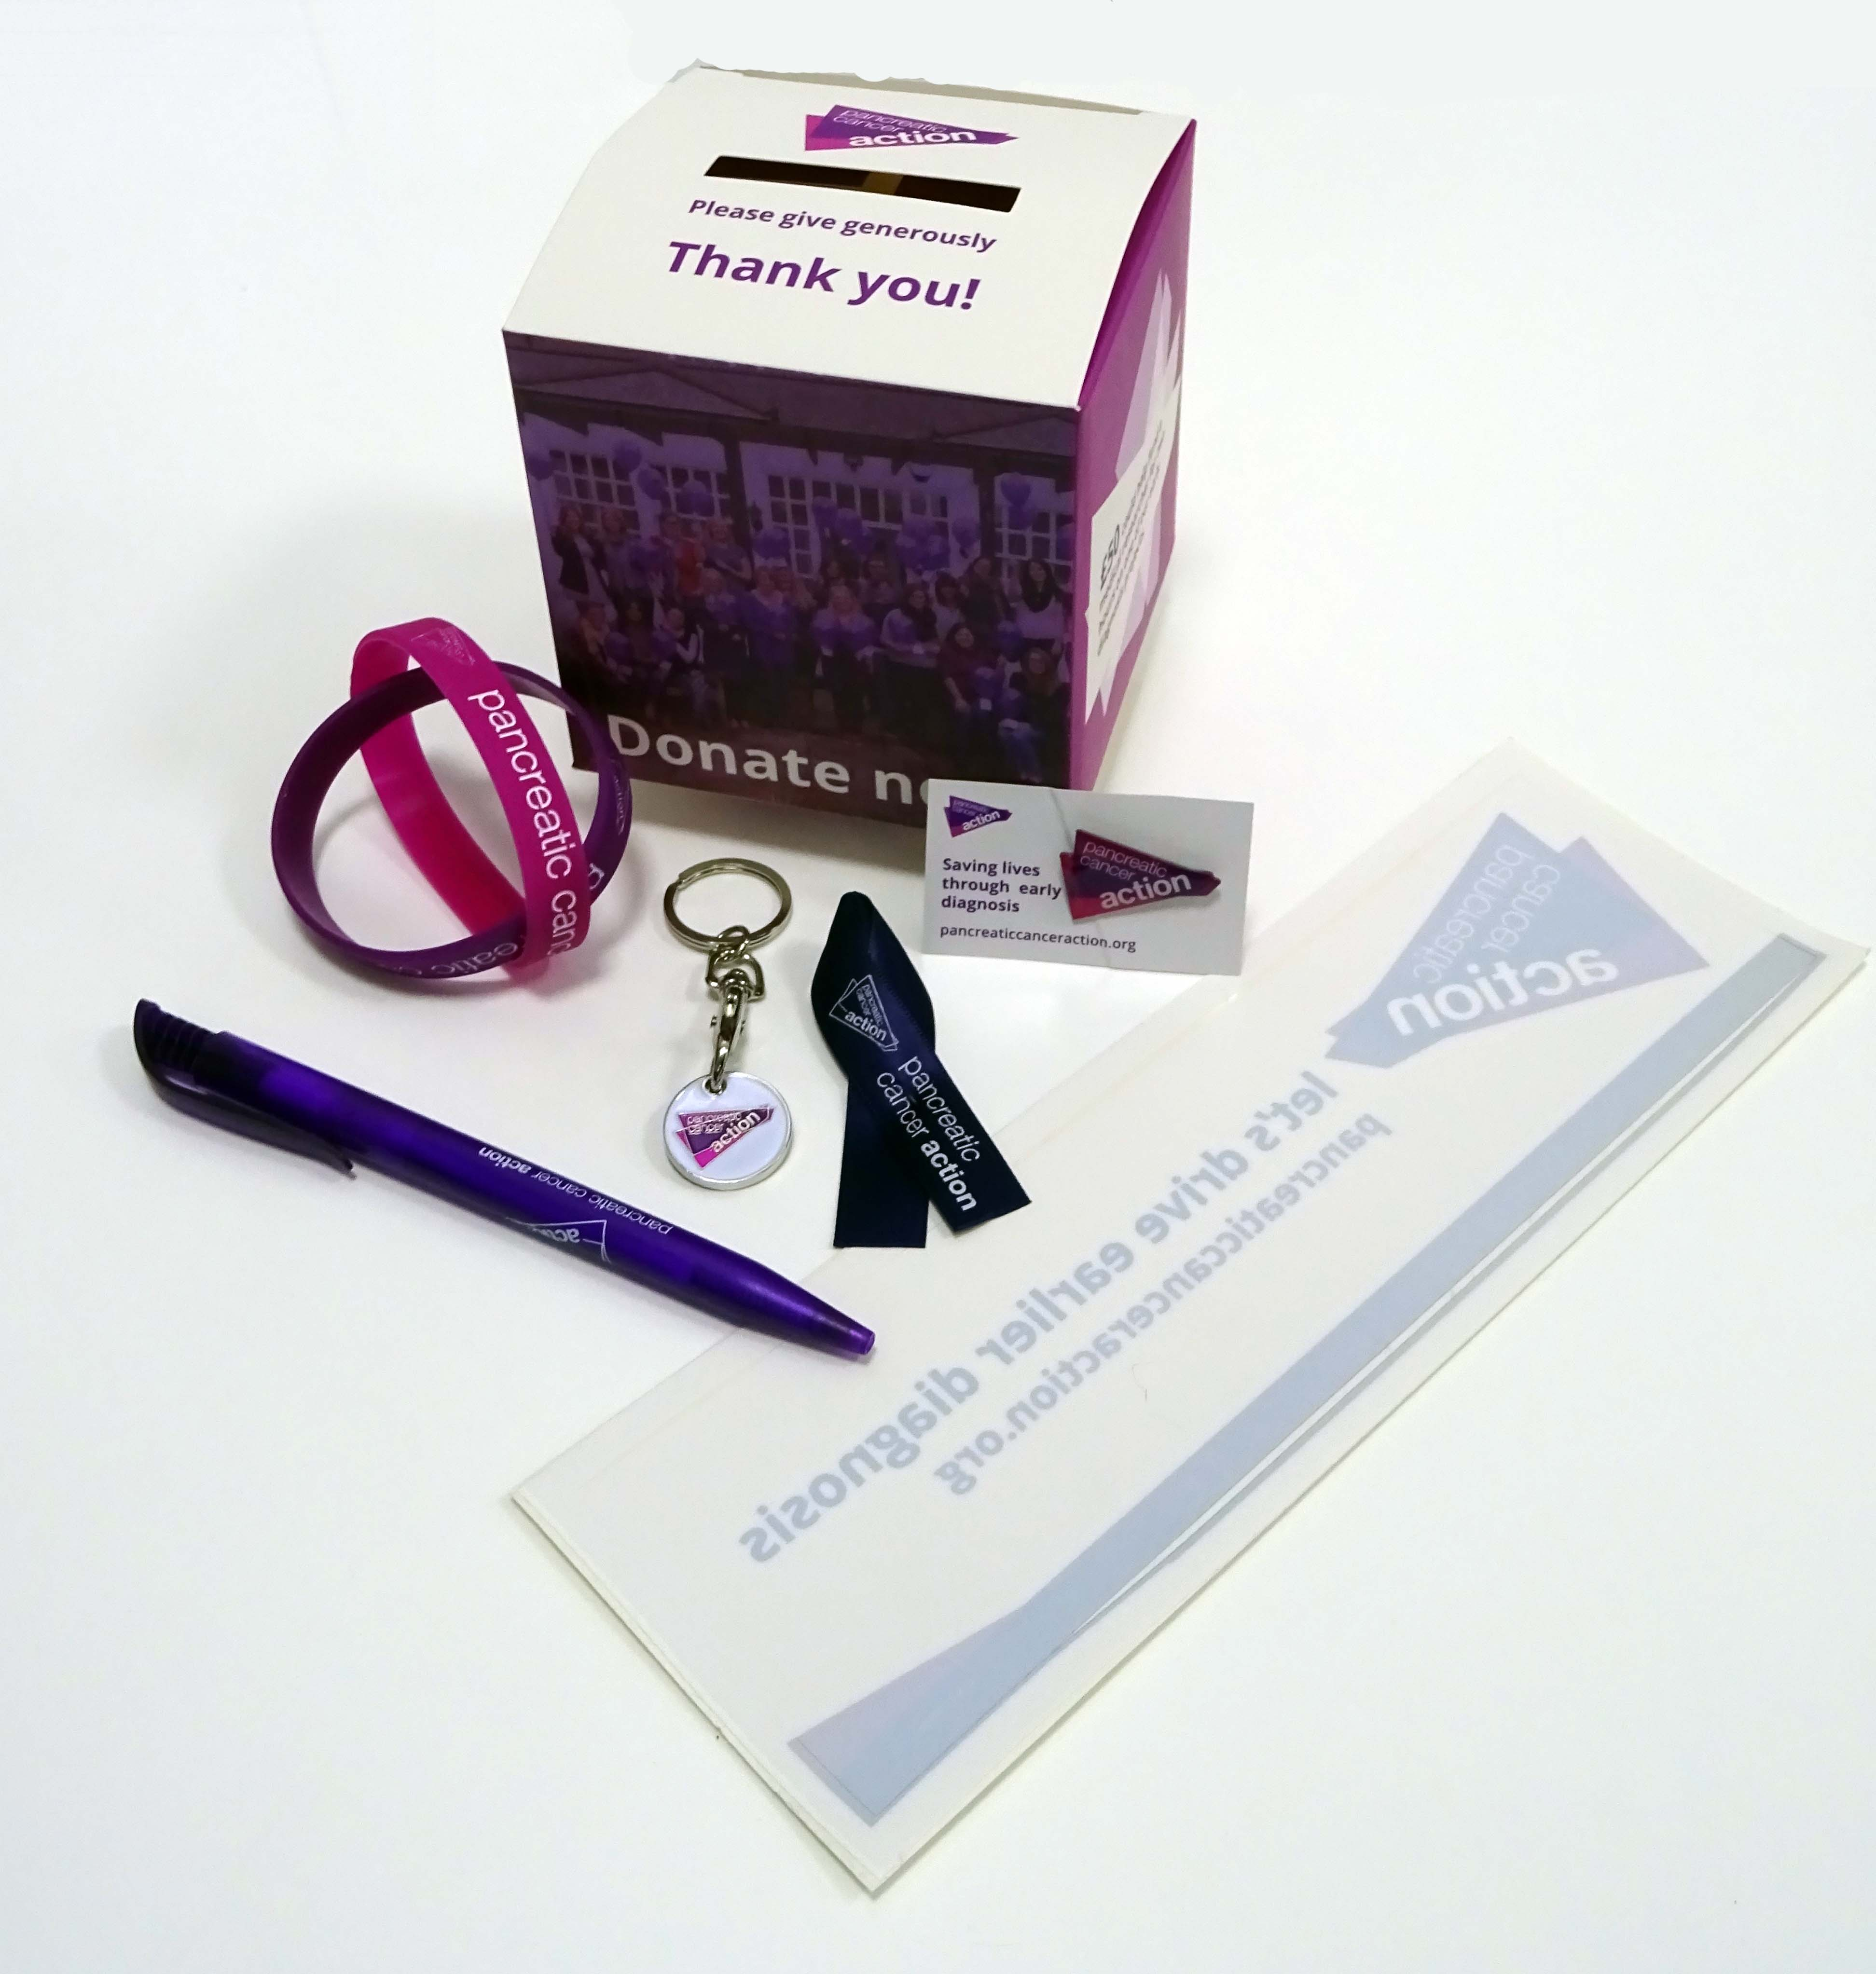 A photo of a supporter pack from Pancreatic Cancer Action